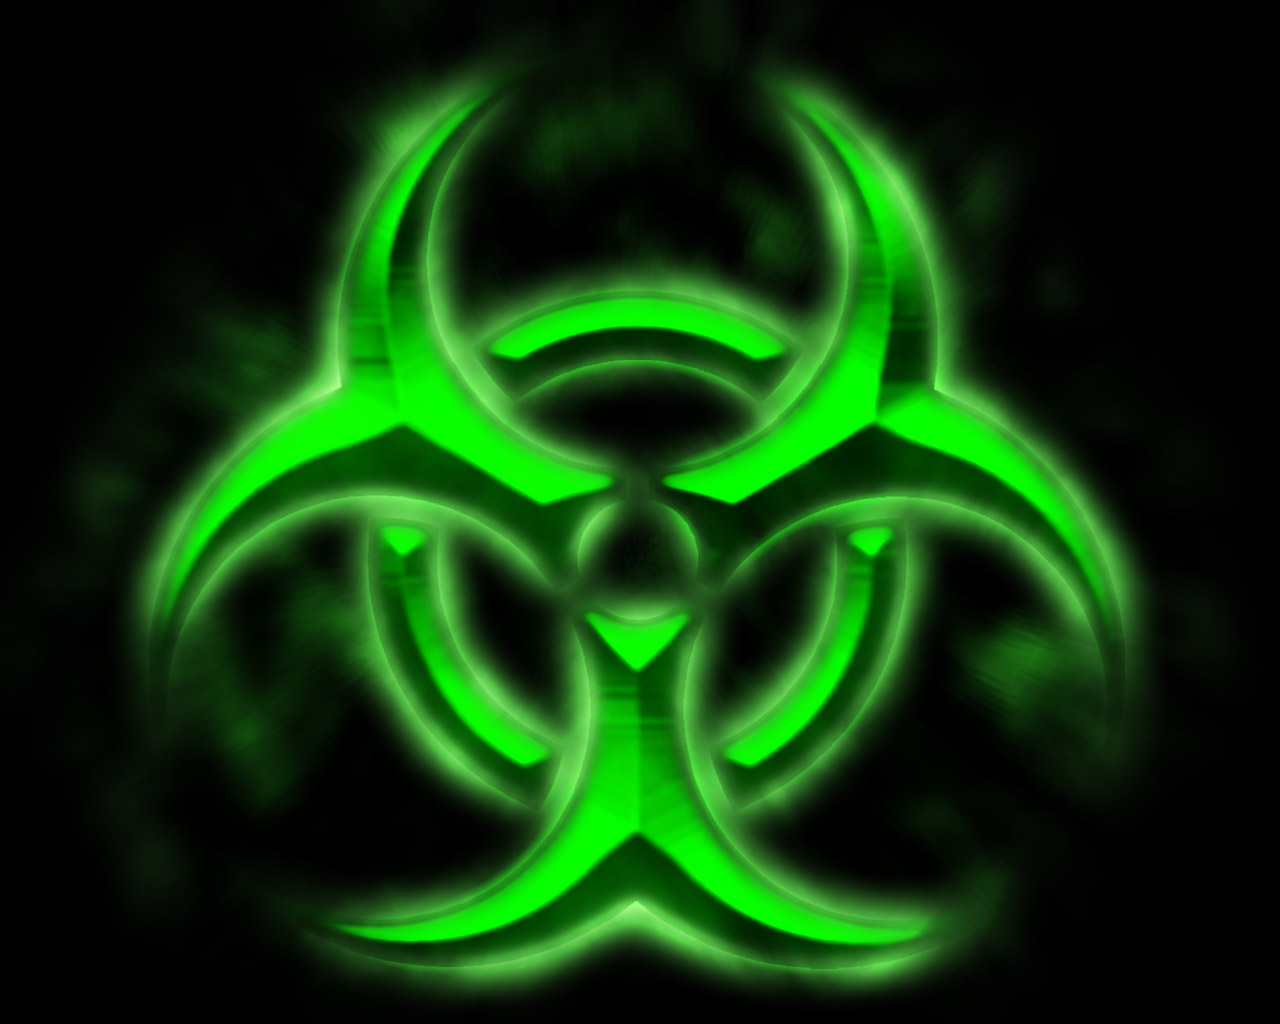 Green Biohazard by Major-Casualtie on DeviantArt